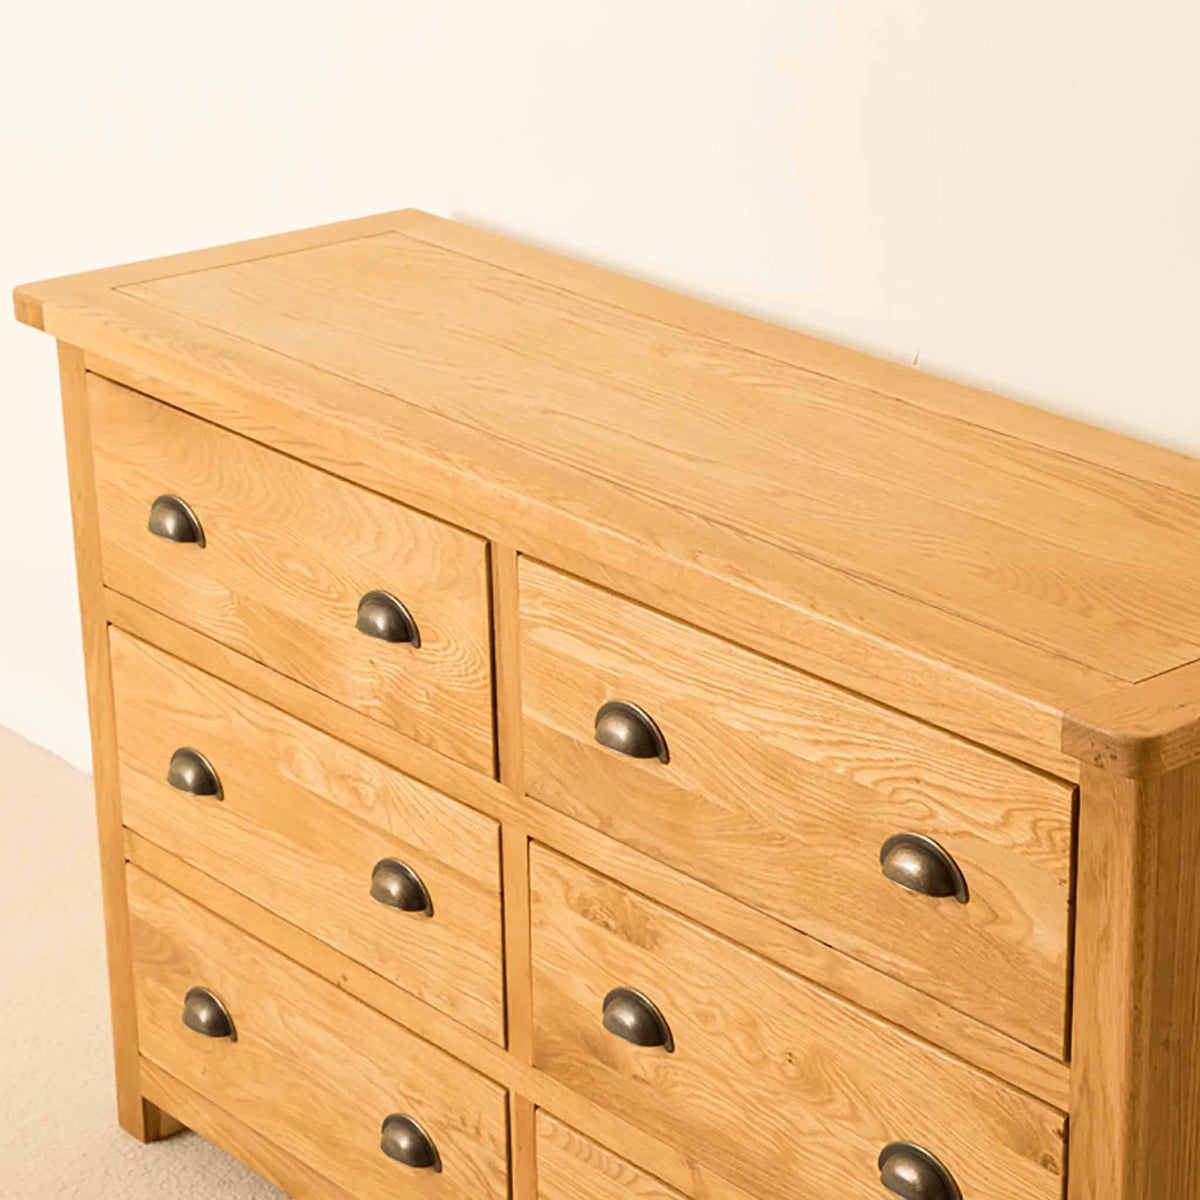 Top view of Roseland Oak 6 Drawer Chest